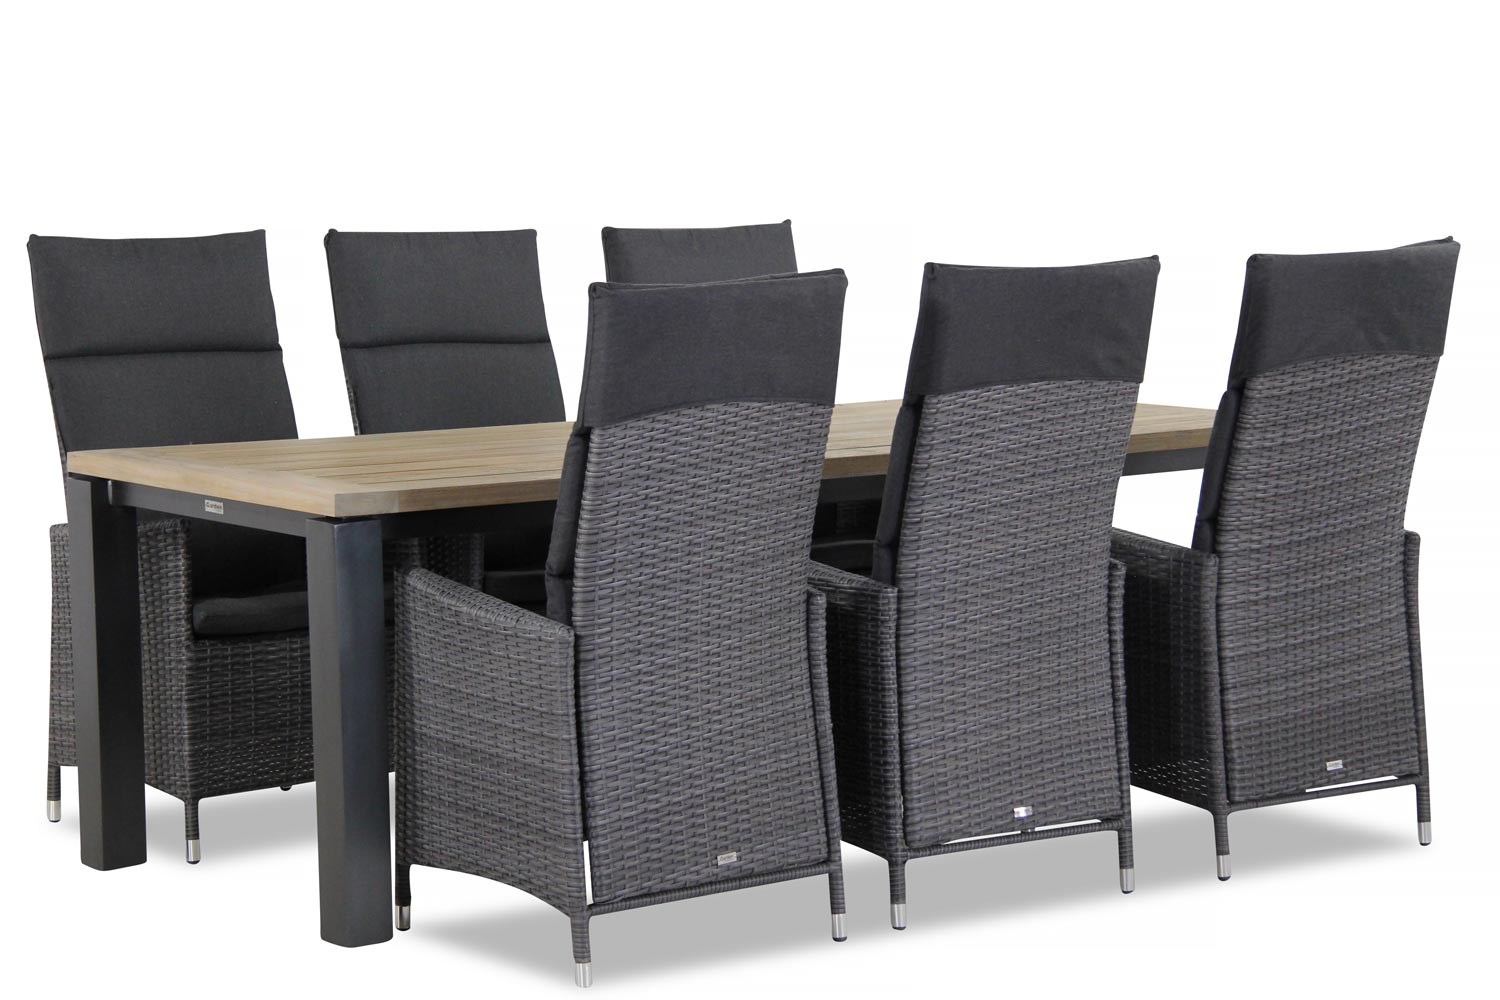 Wicker Garden Collections Denver/Veneto 230 cm dining tuinset 7-delig verstelbaar